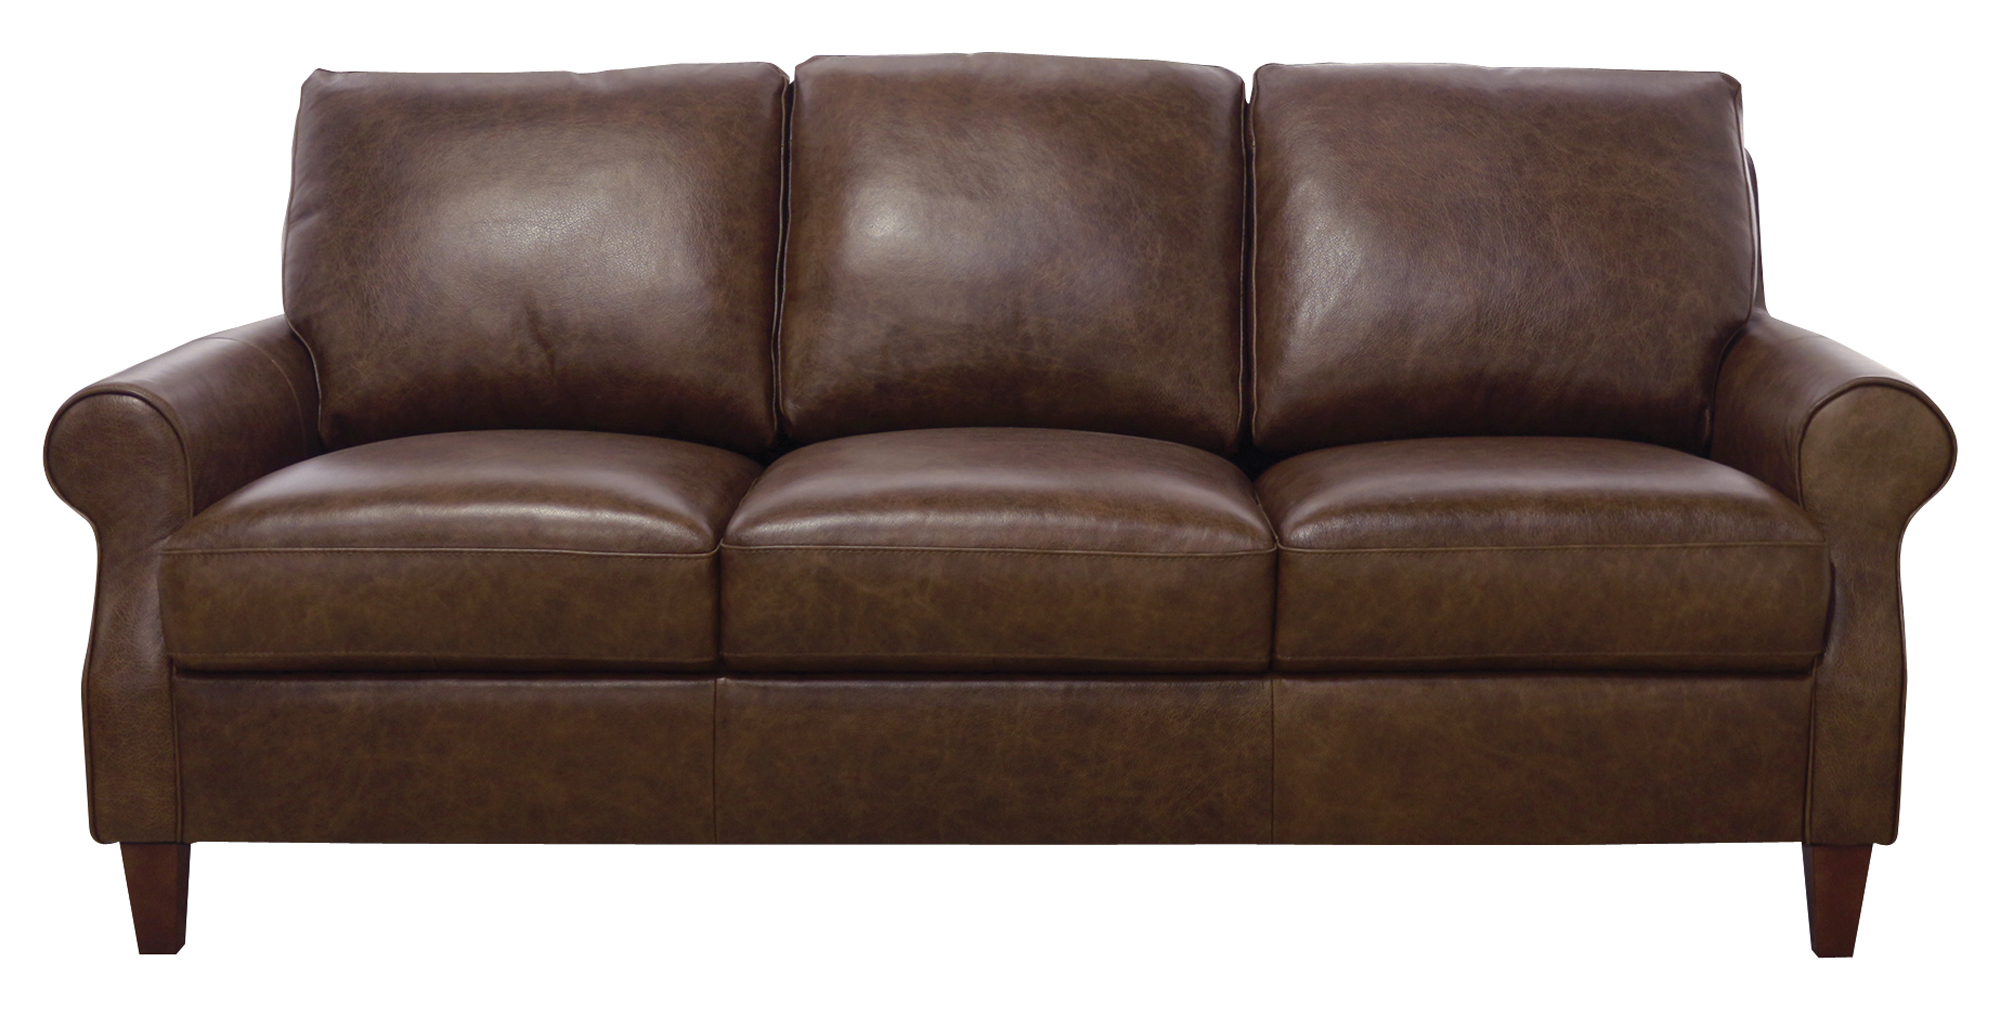 Sofa Overall Dimensions: W: 82″ | H: 38″ | D: 40″ Back Height: 18″ Arm Height: 24″ Arm Width: 7″ Inside Seat Dimensions: W: 68″ | H: 20″ | D: 21″